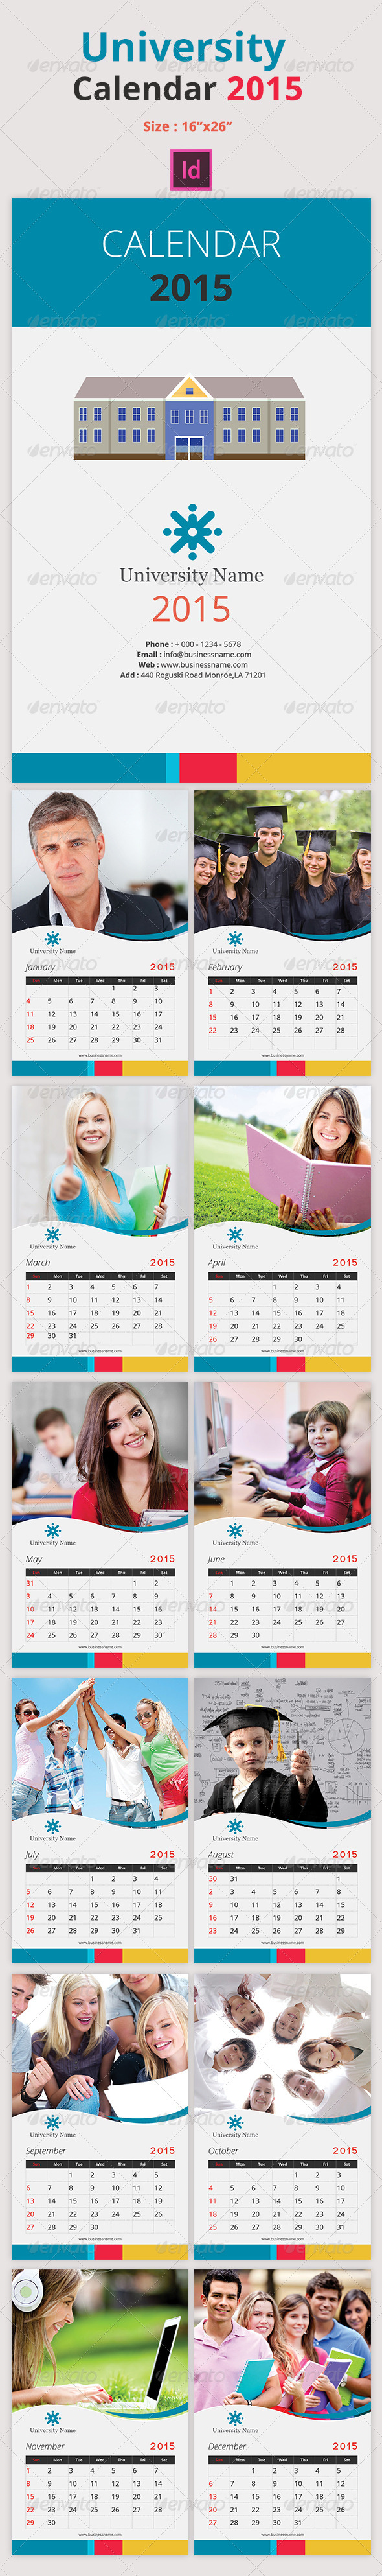 GraphicRiver University Calendar 2015 8752305